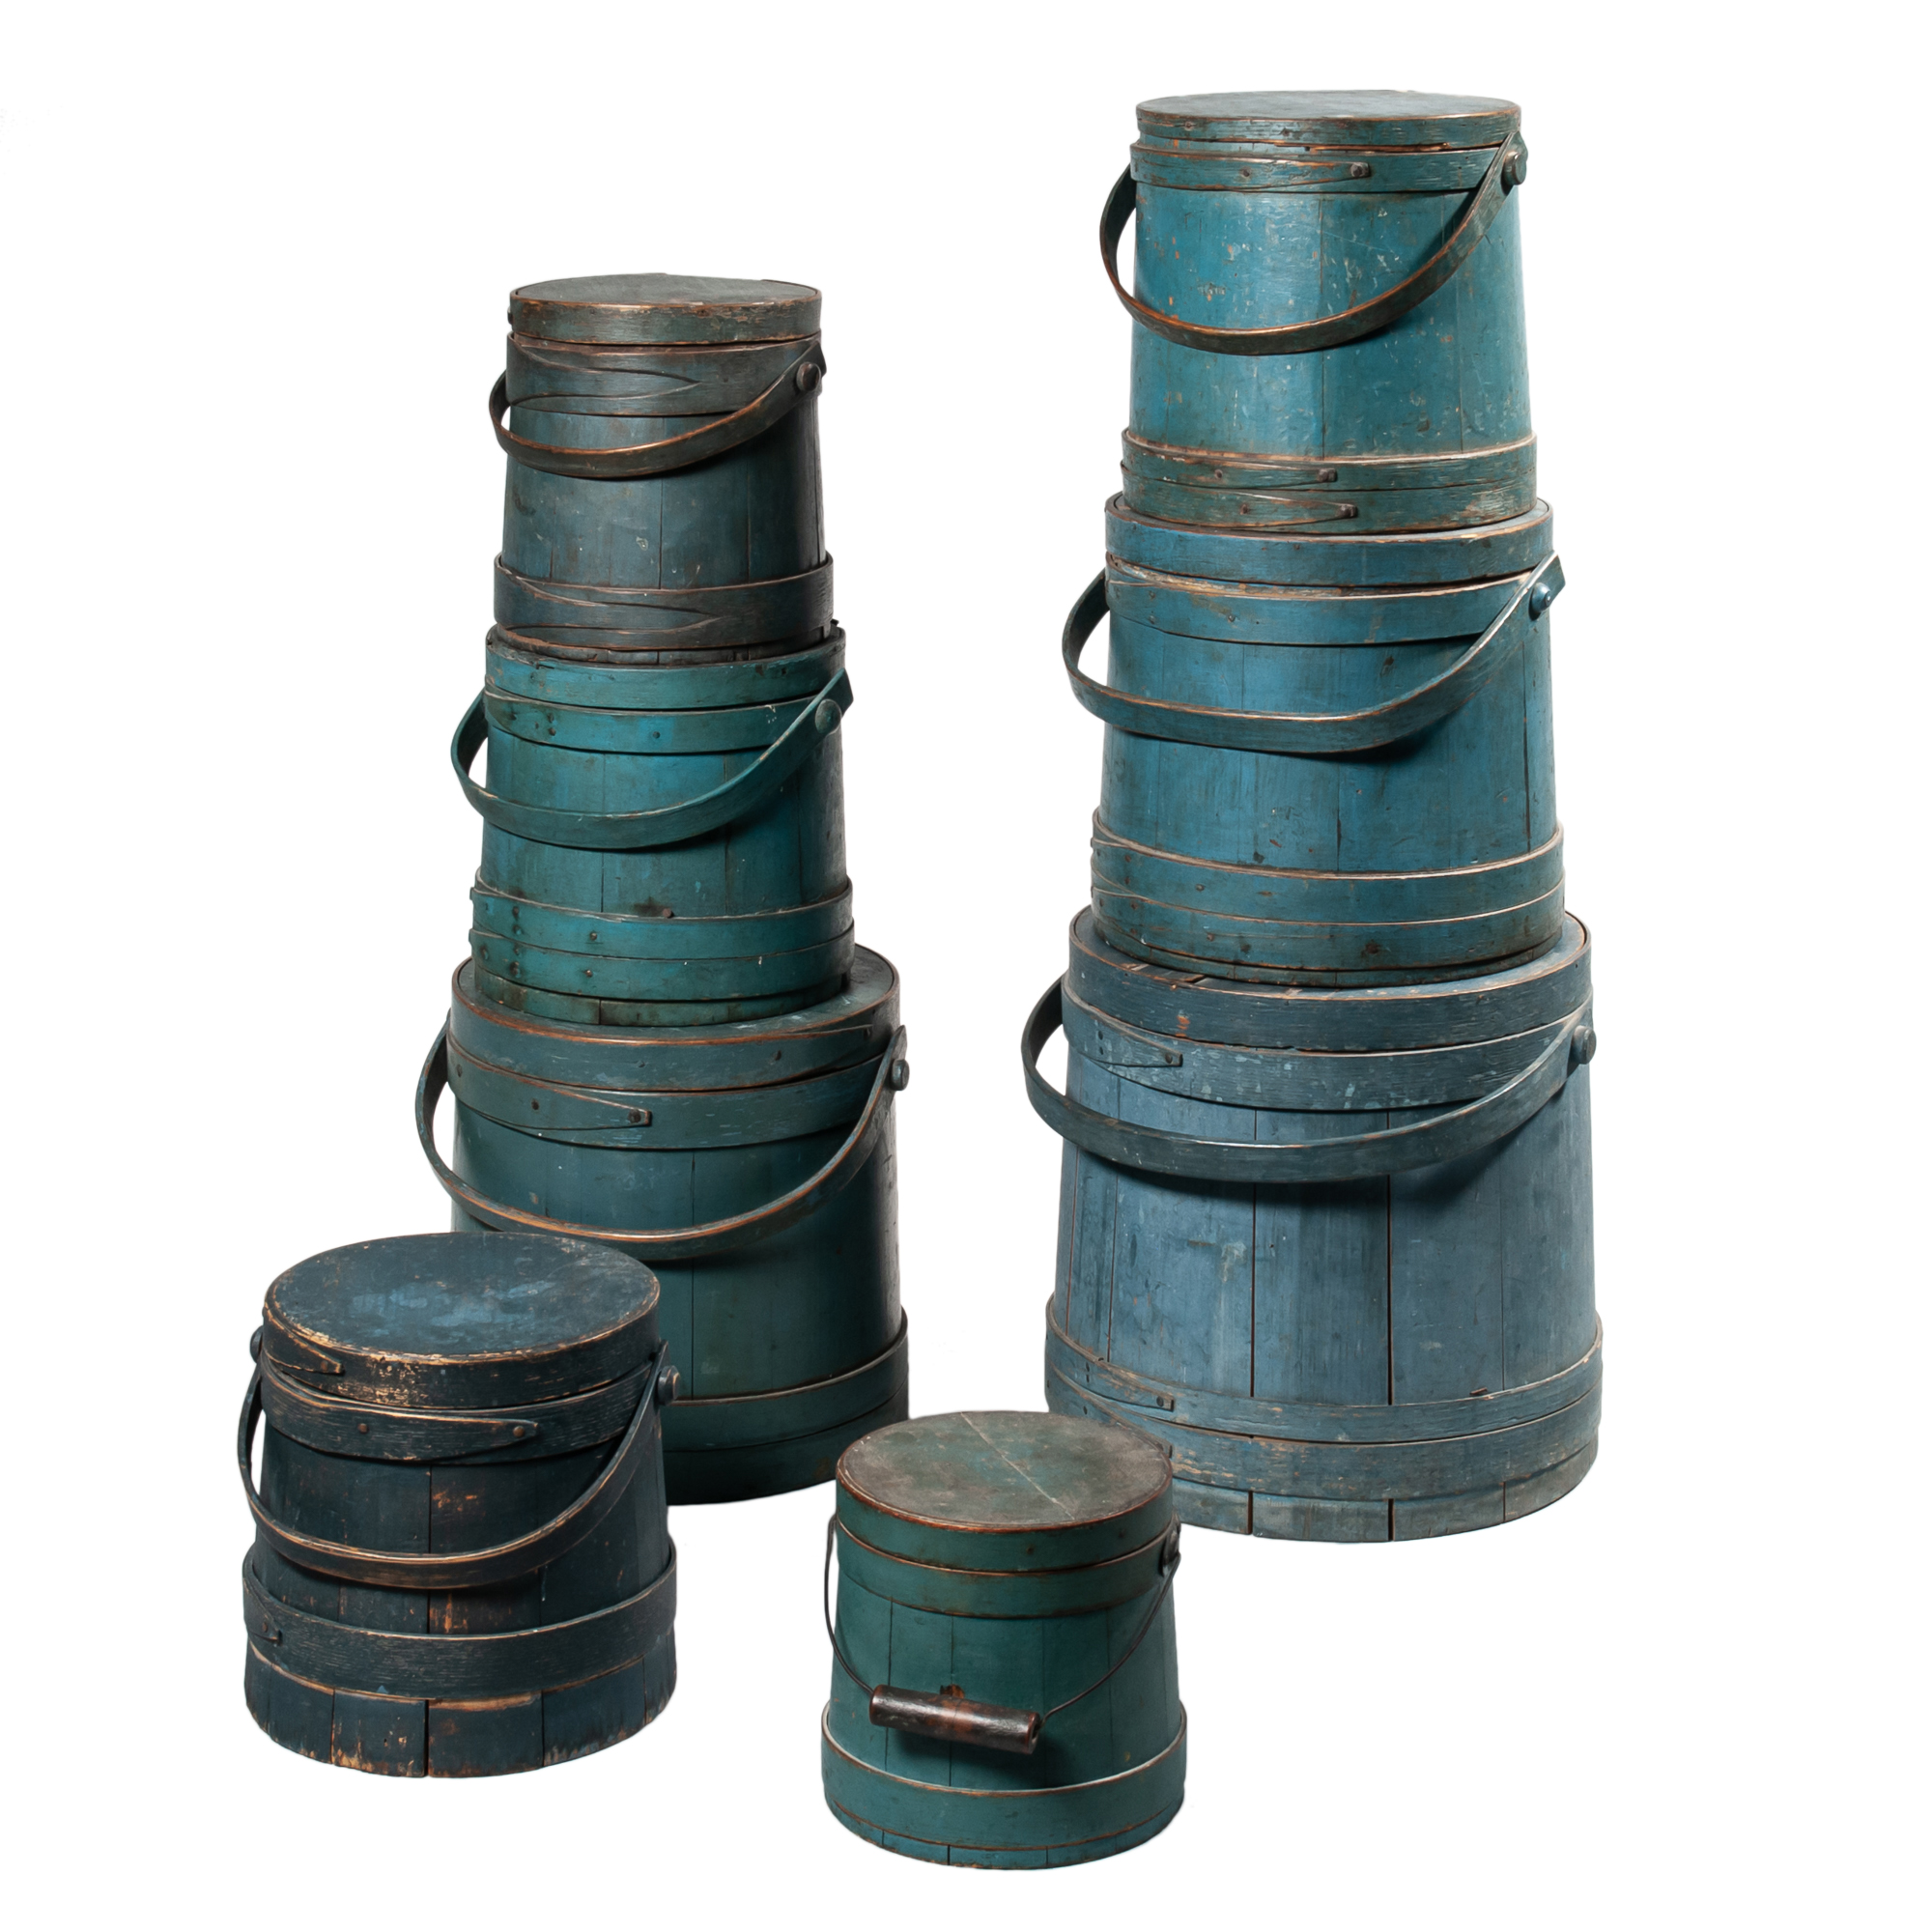 Stack of Eight Blue-painted Lidded Pails (Lot 1718, Estimate: $800-1,200)